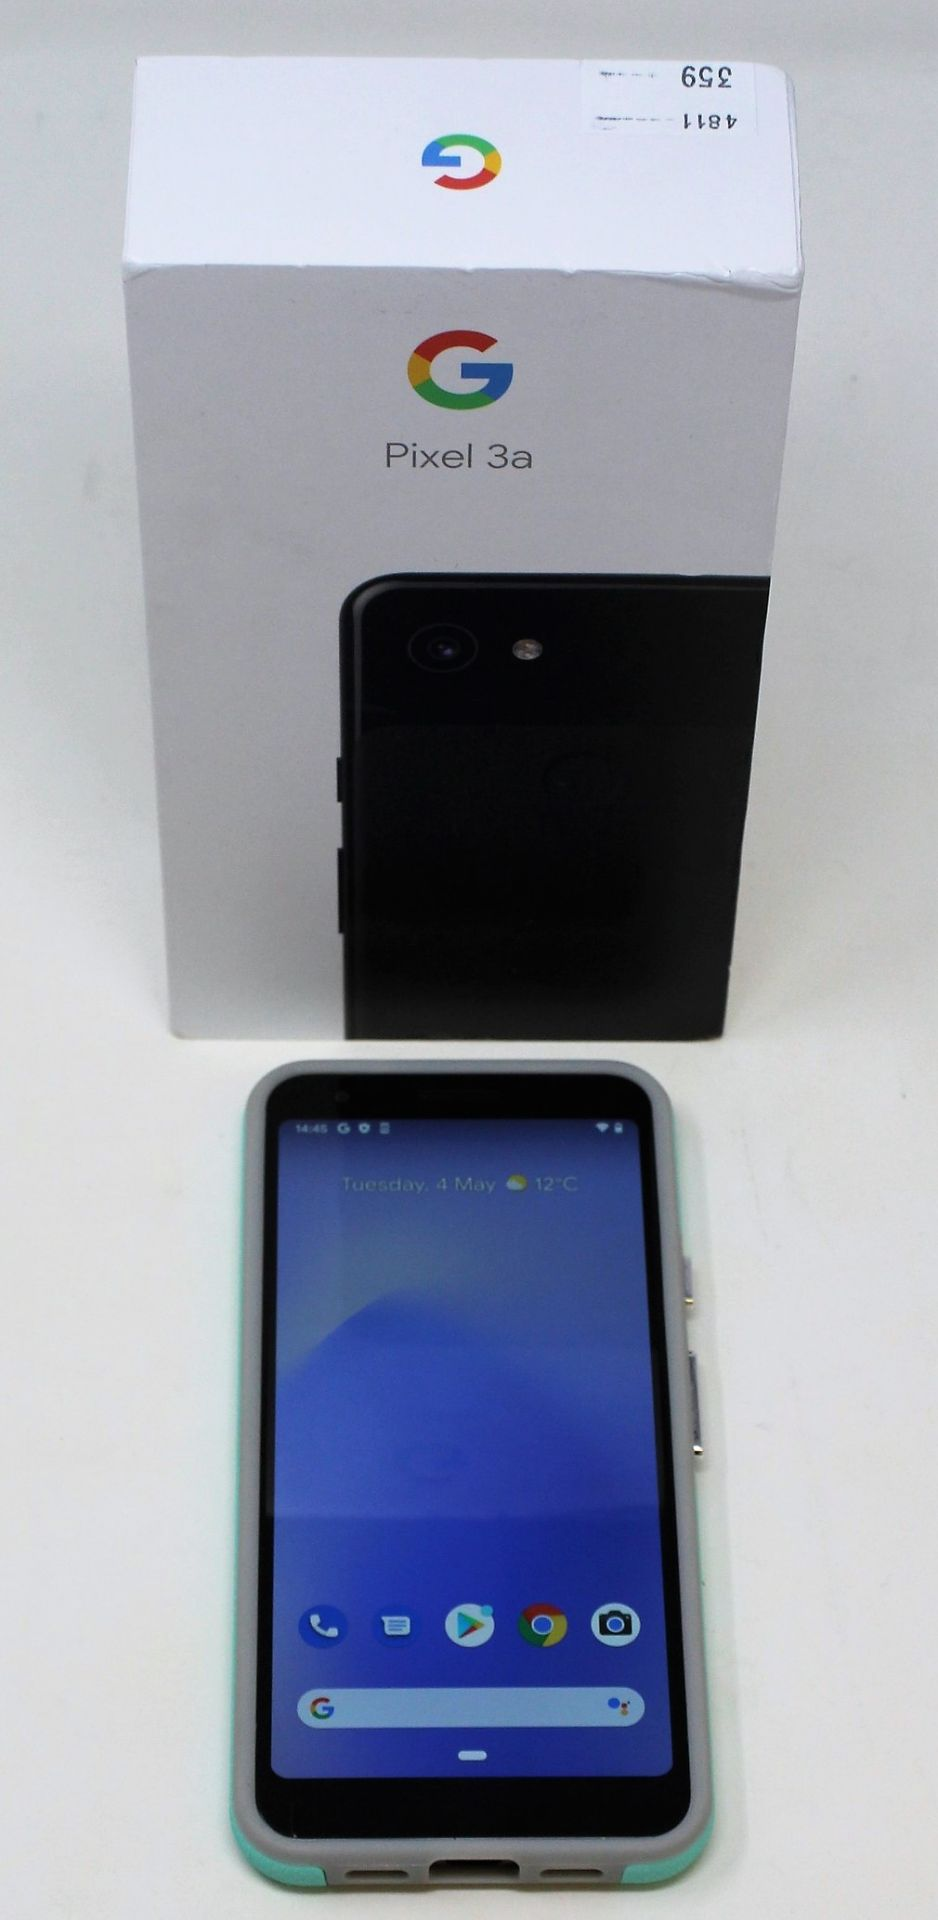 A pre-owned Google Pixel 3a G020G 64GB in Just Black (FRP clear) (Checkmend report ID: CM16922336- - Image 2 of 15